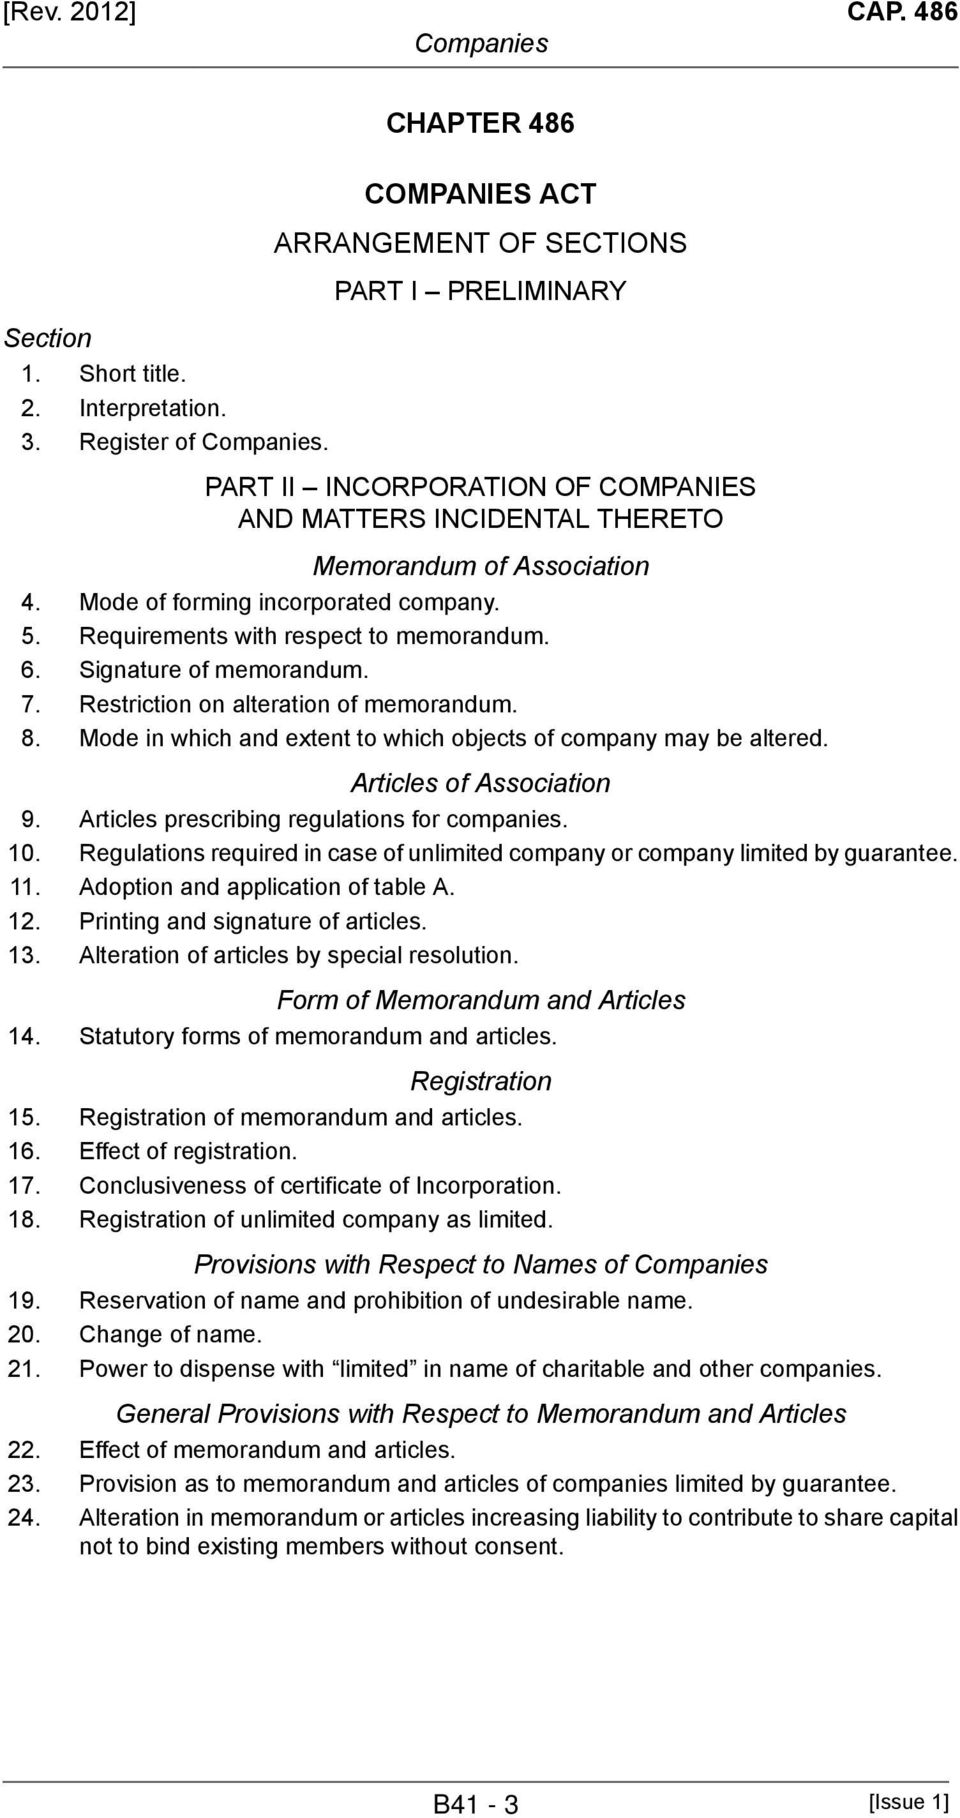 Requirements with respect to memorandum. 6. Signature of memorandum. 7. Restriction on alteration of memorandum. 8. Mode in which and extent to which objects of company may be altered.